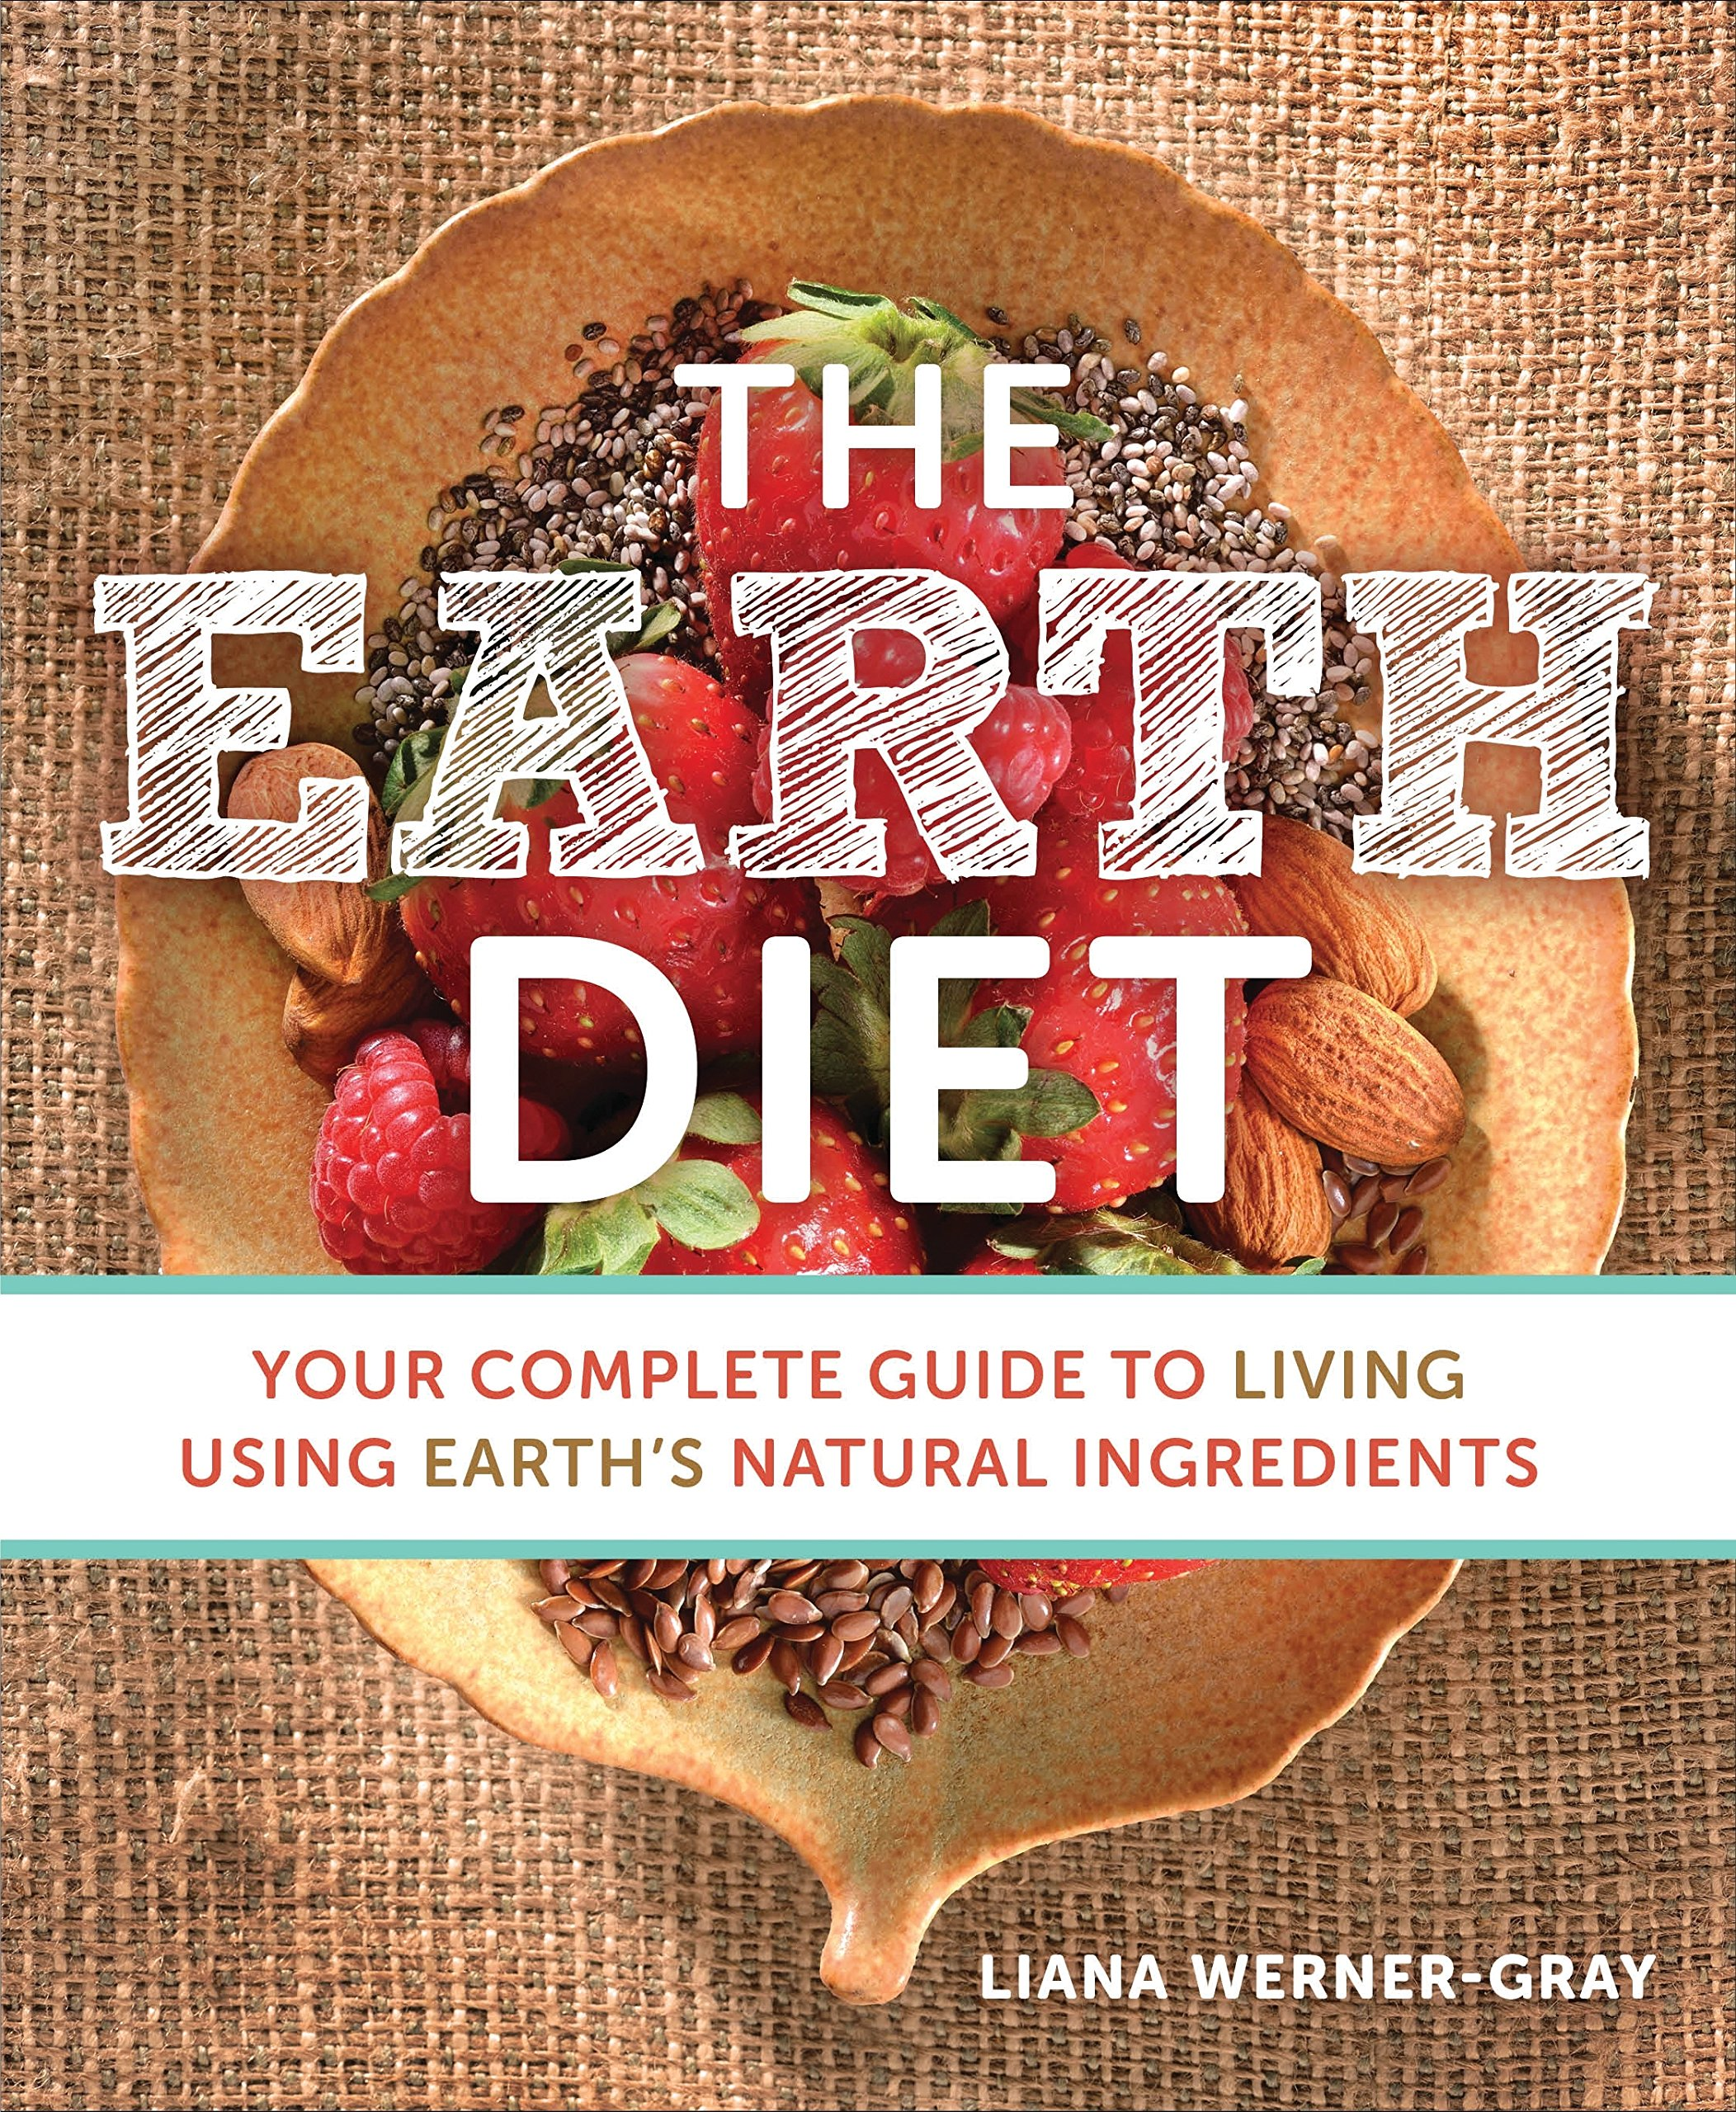 The earth diet your complete guide to living using earths the earth diet your complete guide to living using earths natural ingredients liana werner gray 0783324831825 amazon books fandeluxe Ebook collections